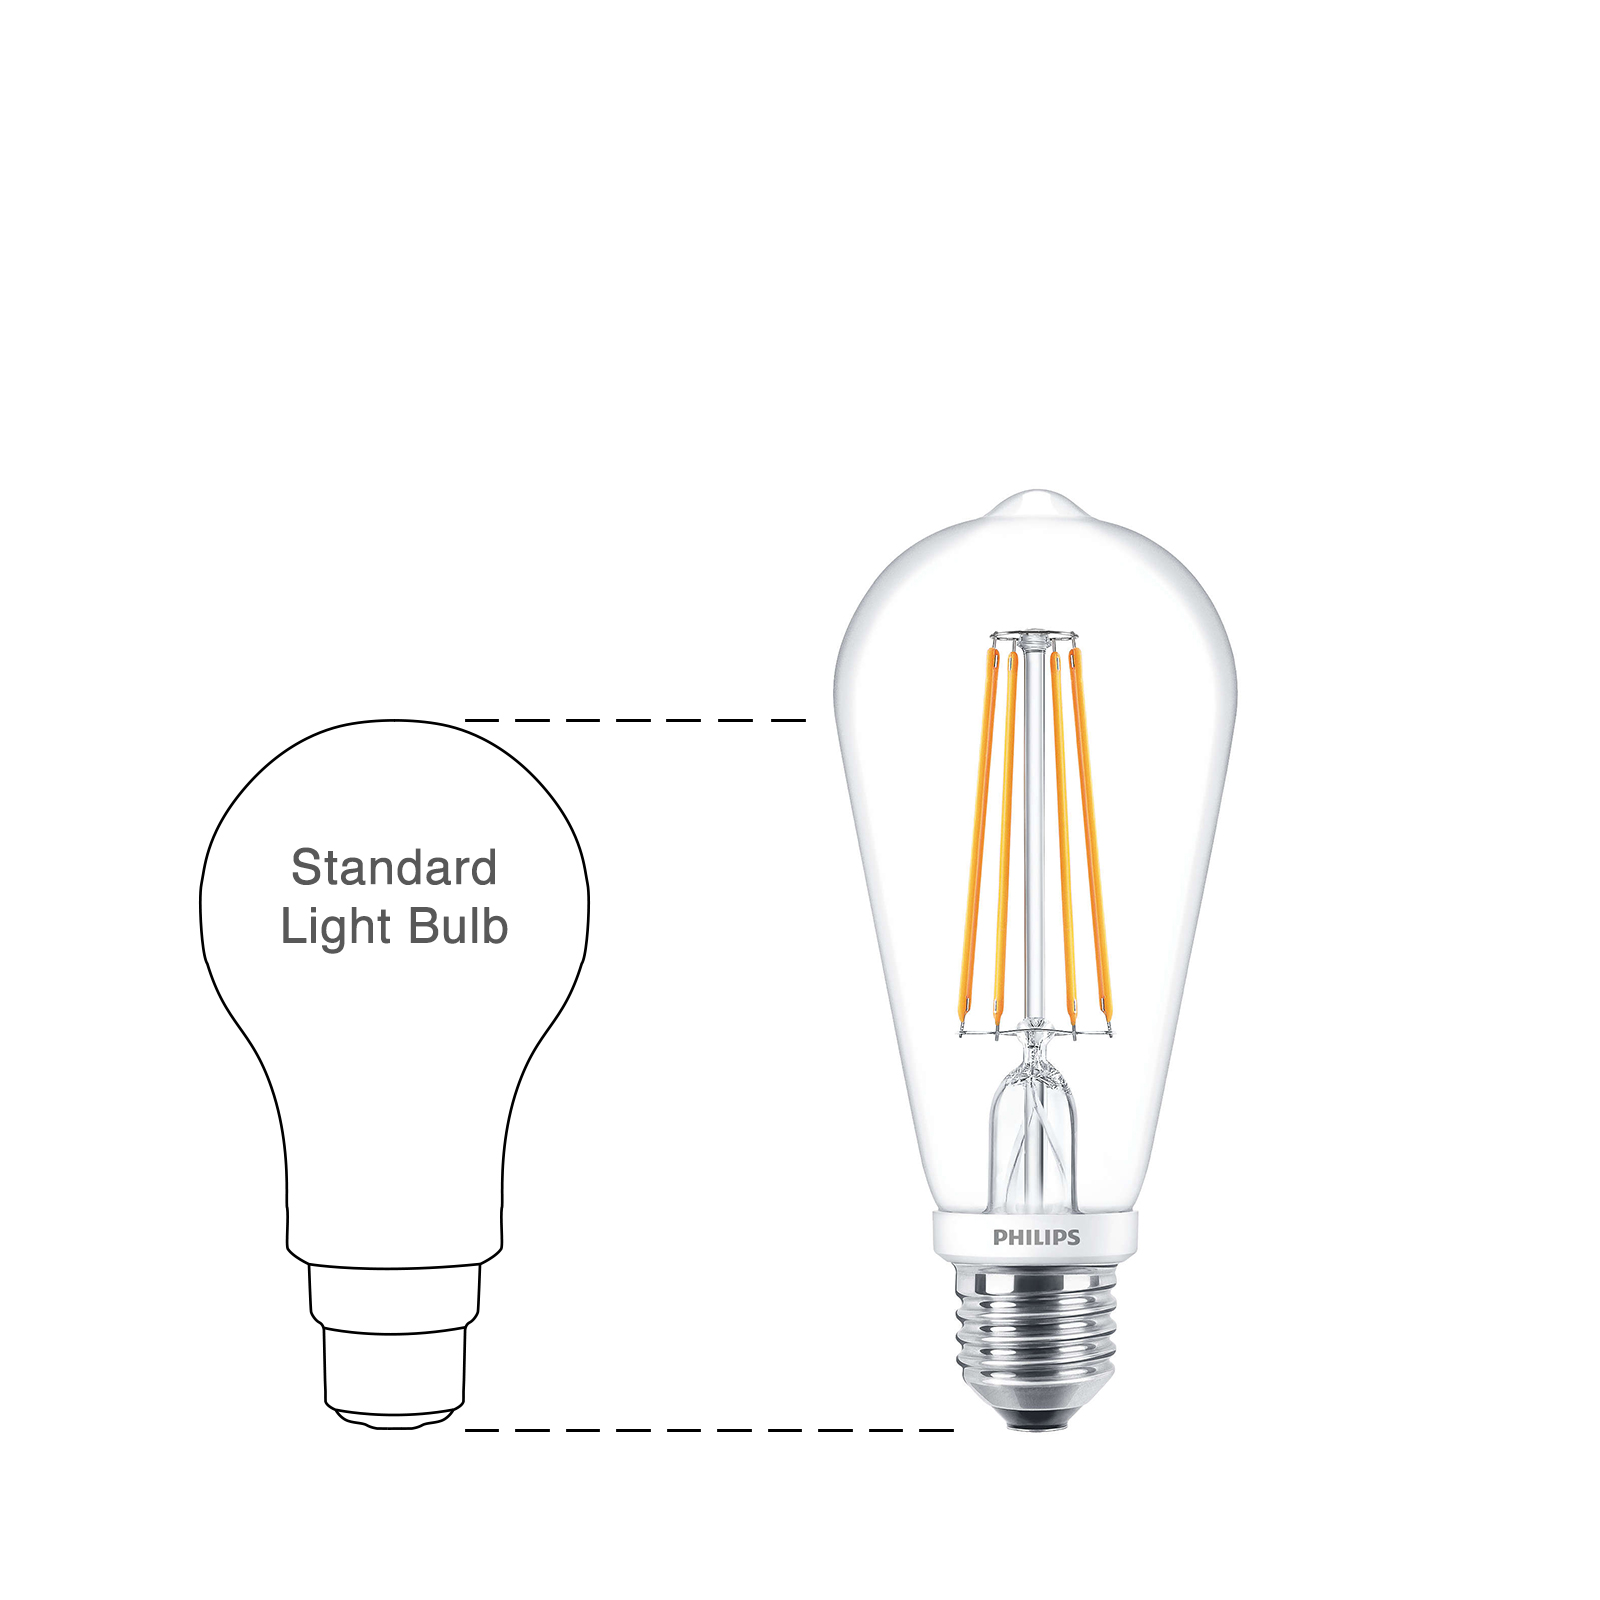 filament lamp diagram  stunning thermistor graph with